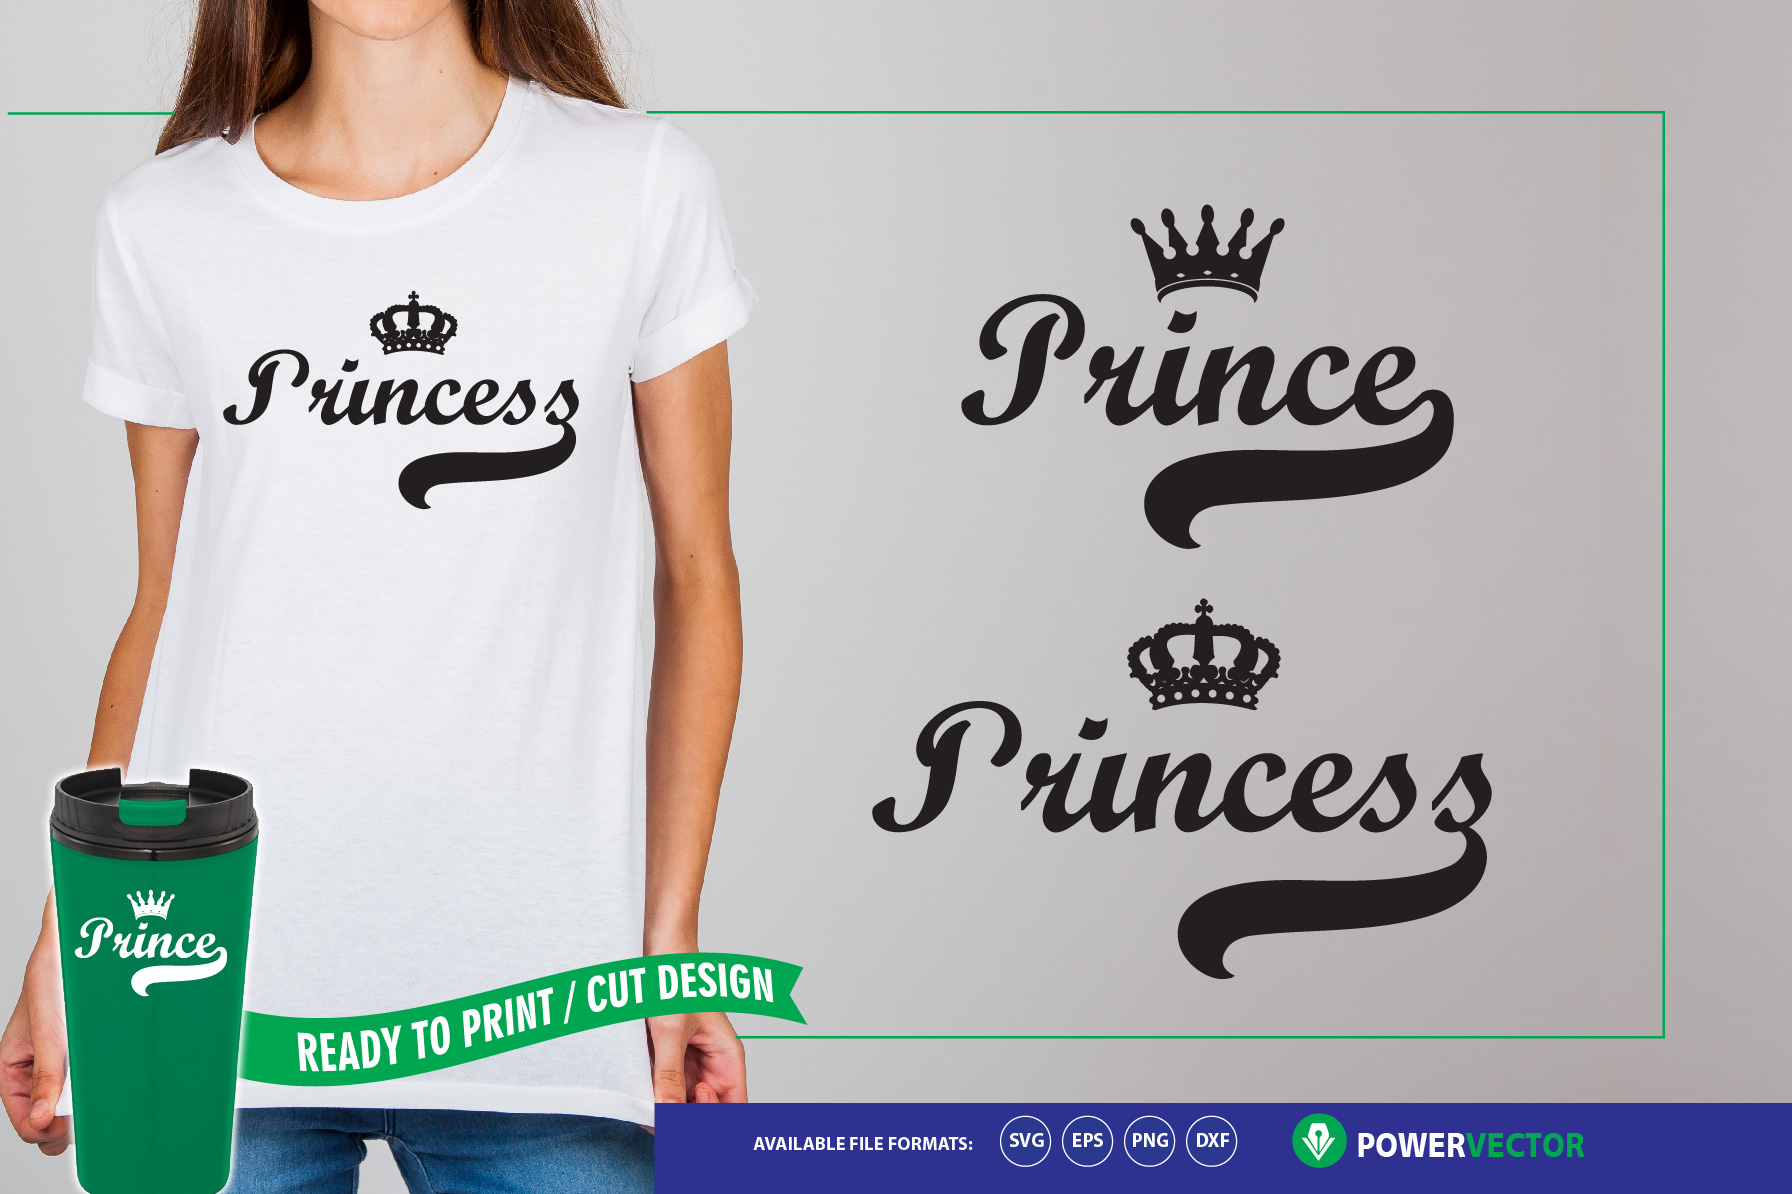 Prince & Princess - Crafts making SVG Files example image 1